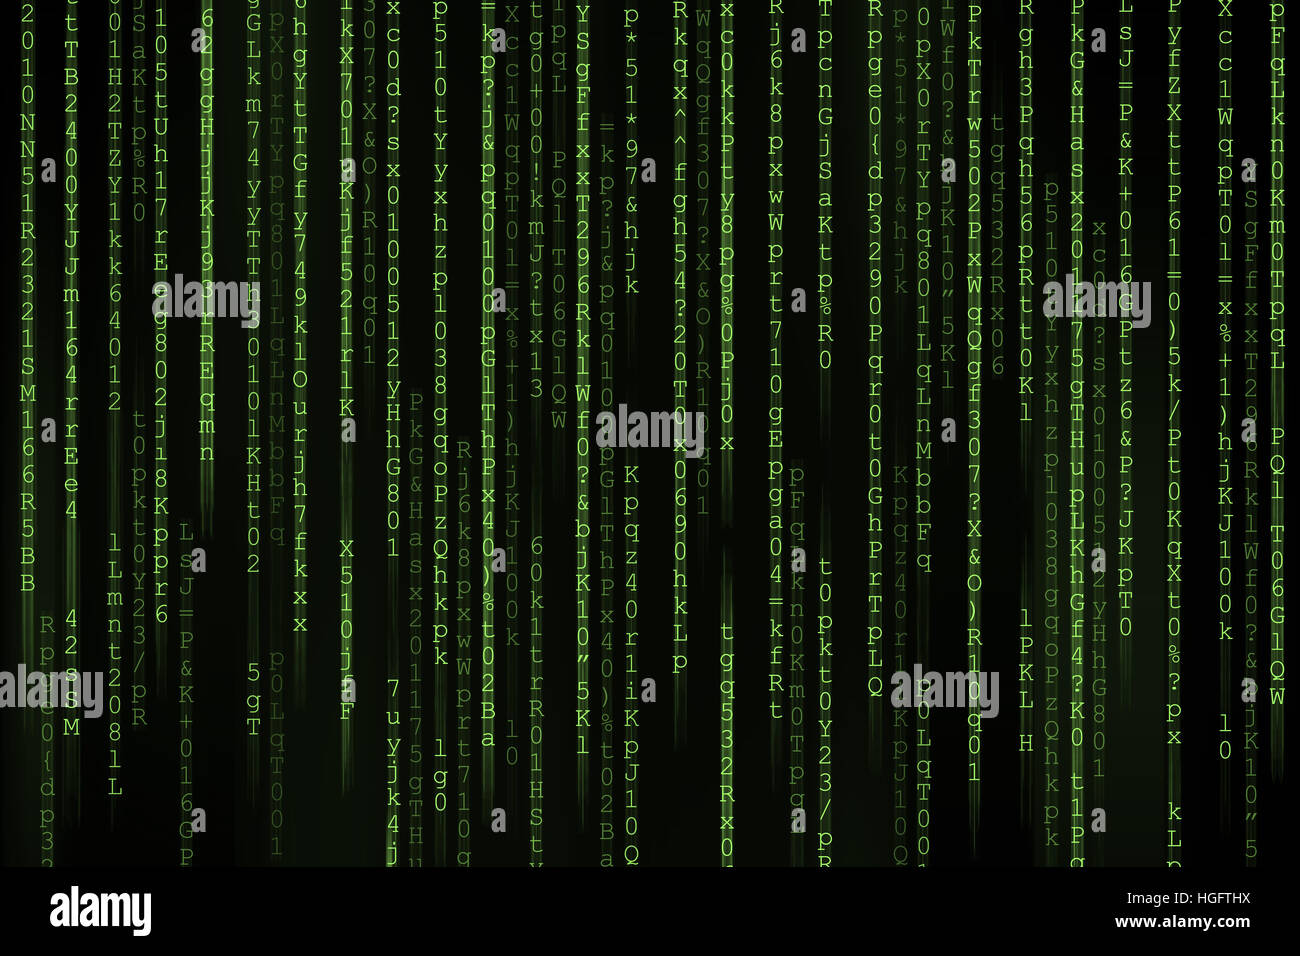 Matrix background with the green symbols - Stock Image